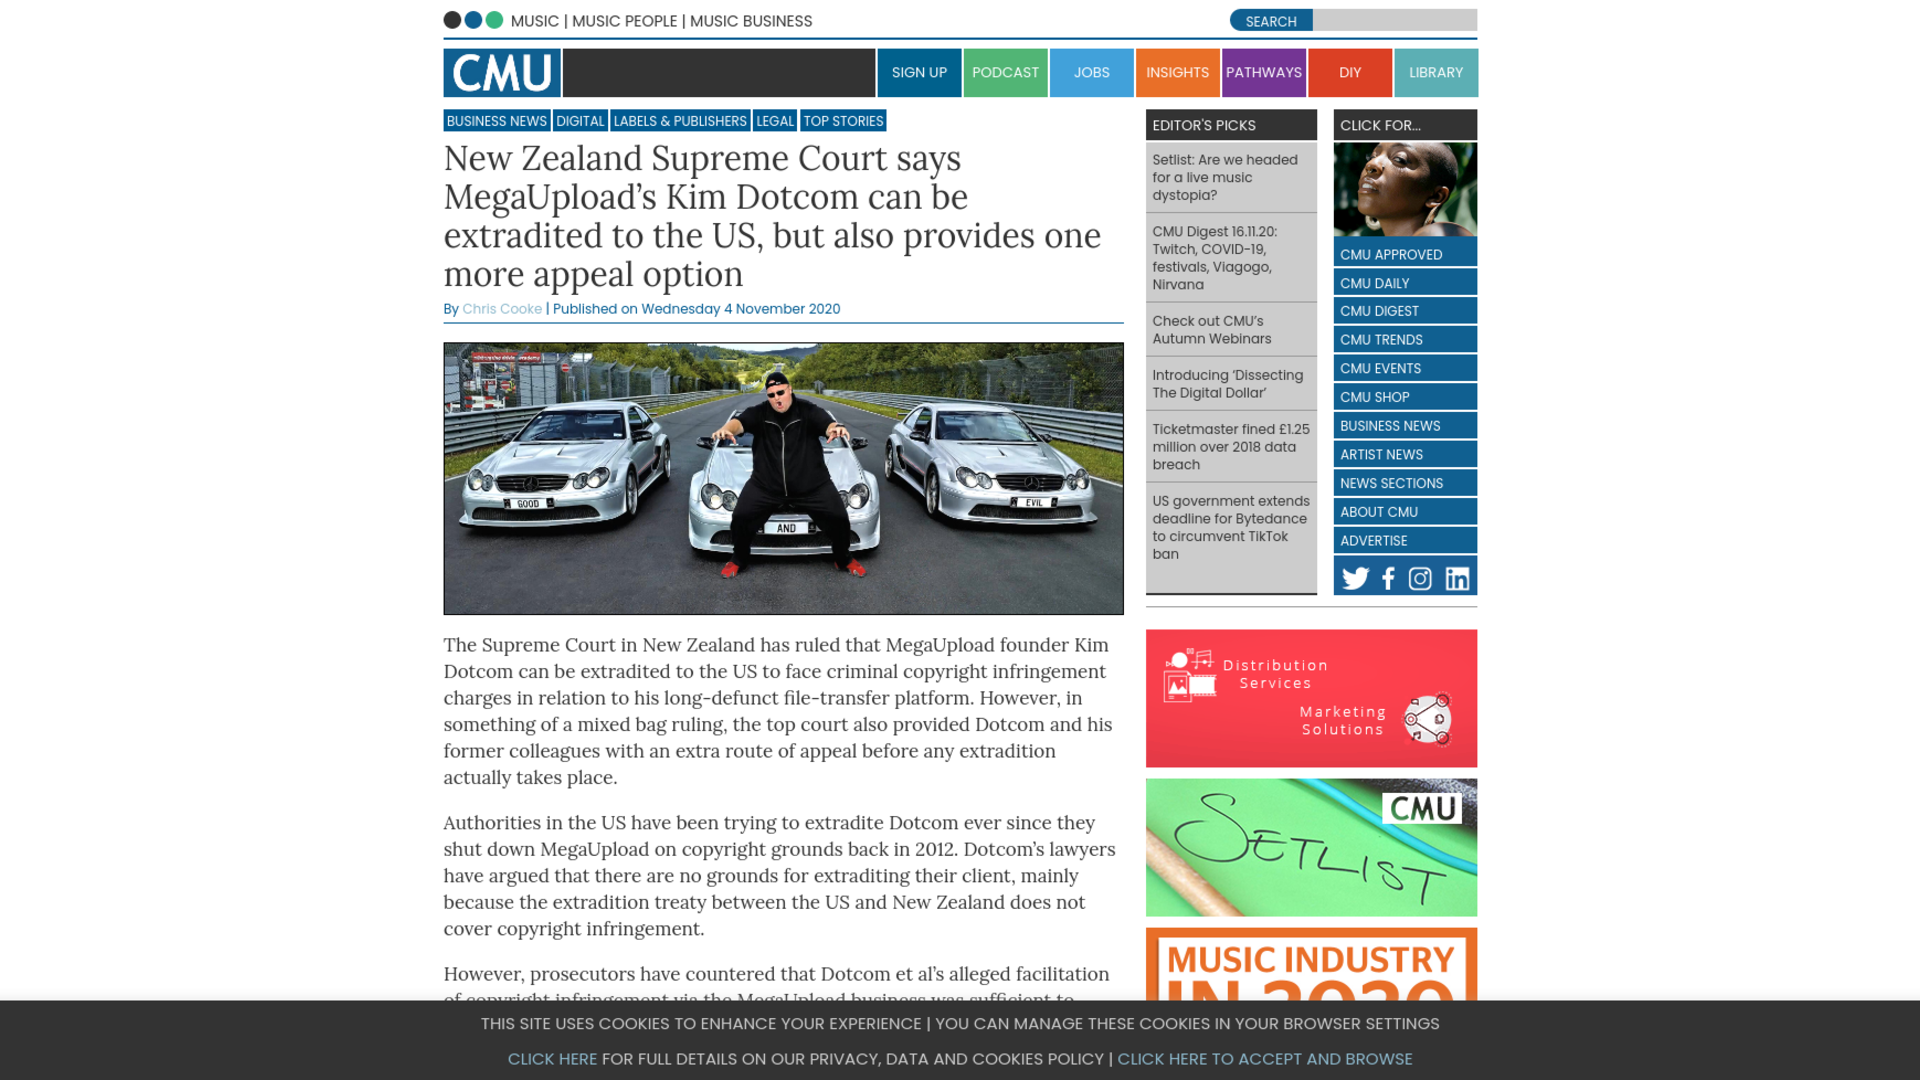 Fairness Rocks News New Zealand Supreme Court says MegaUpload's Kim Dotcom can be extradited to the US, but also provides one more appeal option